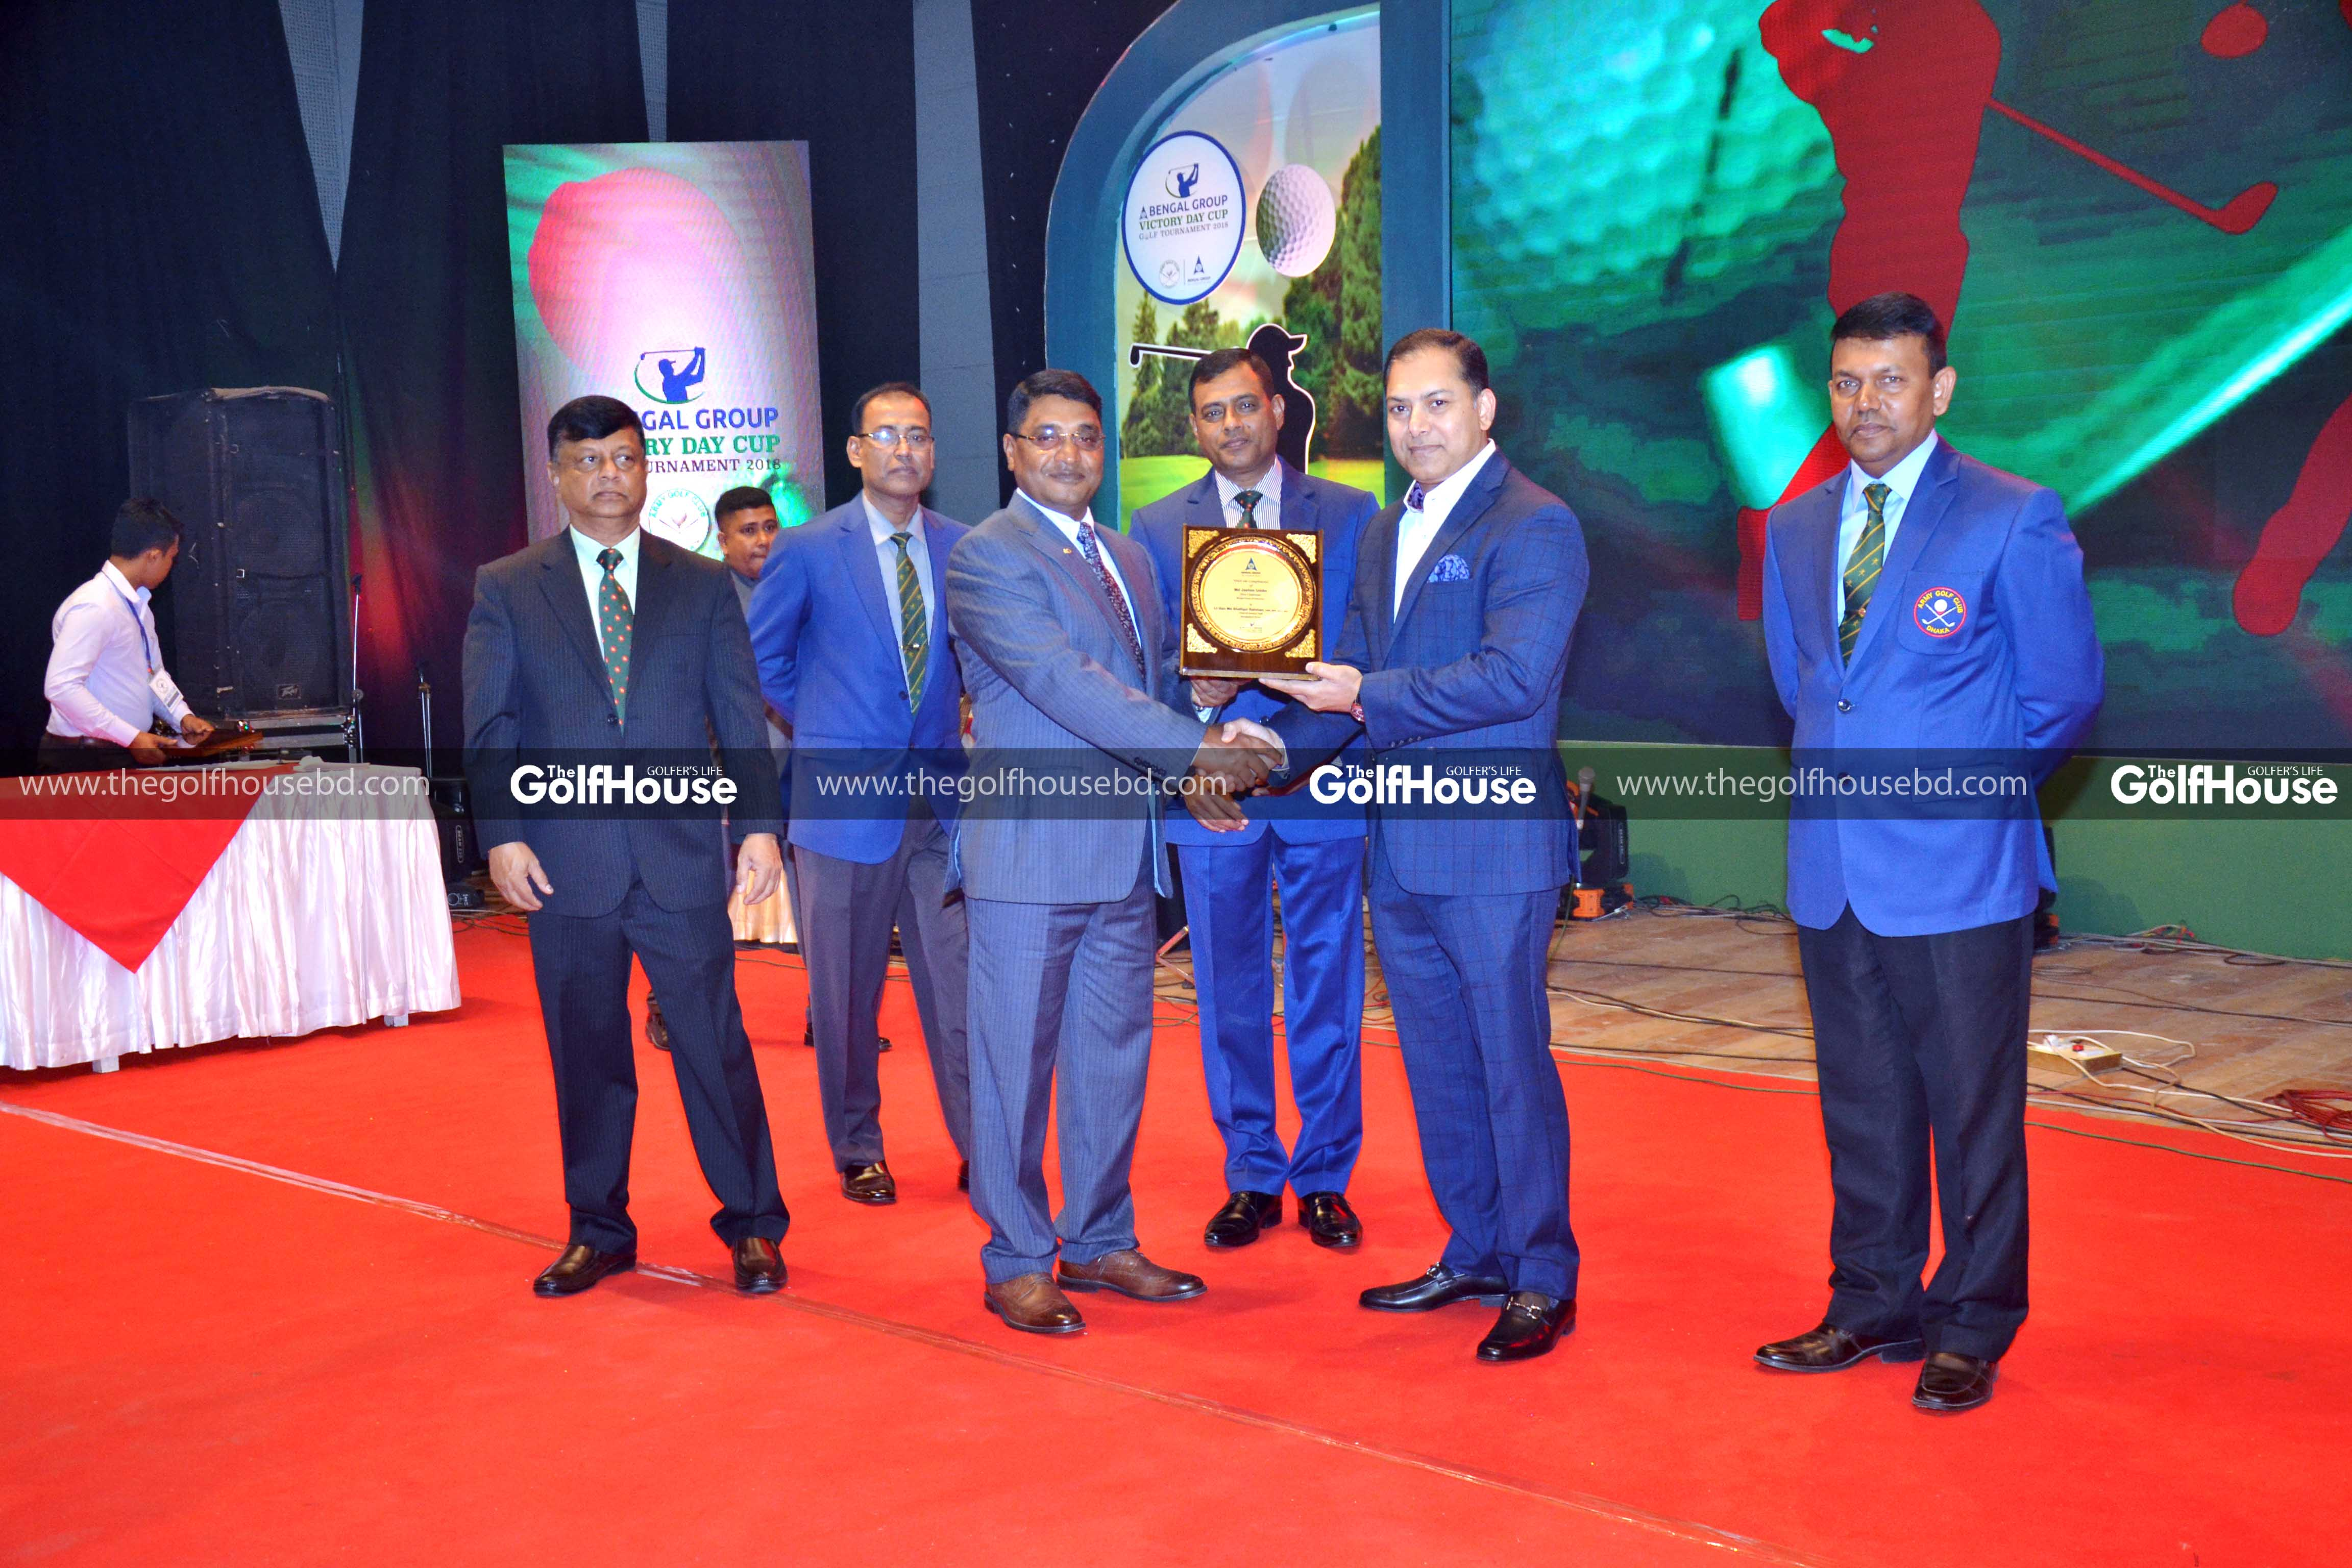 Lieutenant General Md Shafiqur Rahman, Chief of General Staff, Bangladesh Army gave away prizes among the winners as the chief guest of the closing ceremony.